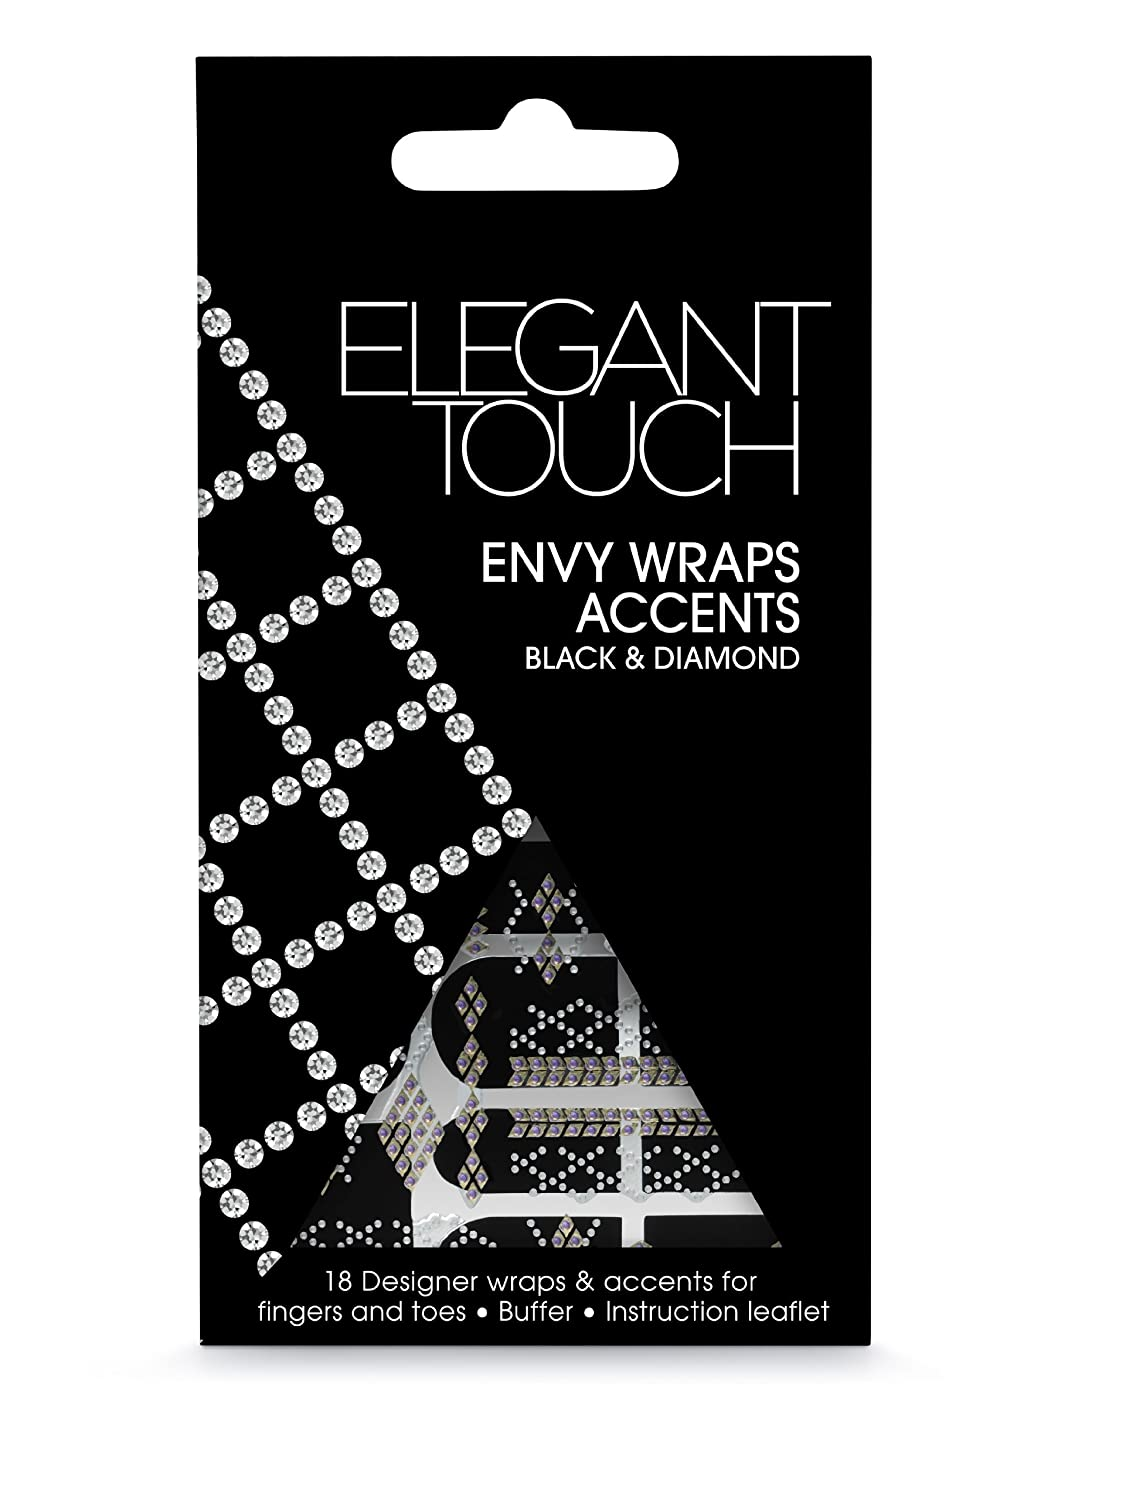 Elegant Touch Envy Wraps Self Adhesive Black and Diamond Accents Original Additions 4035252